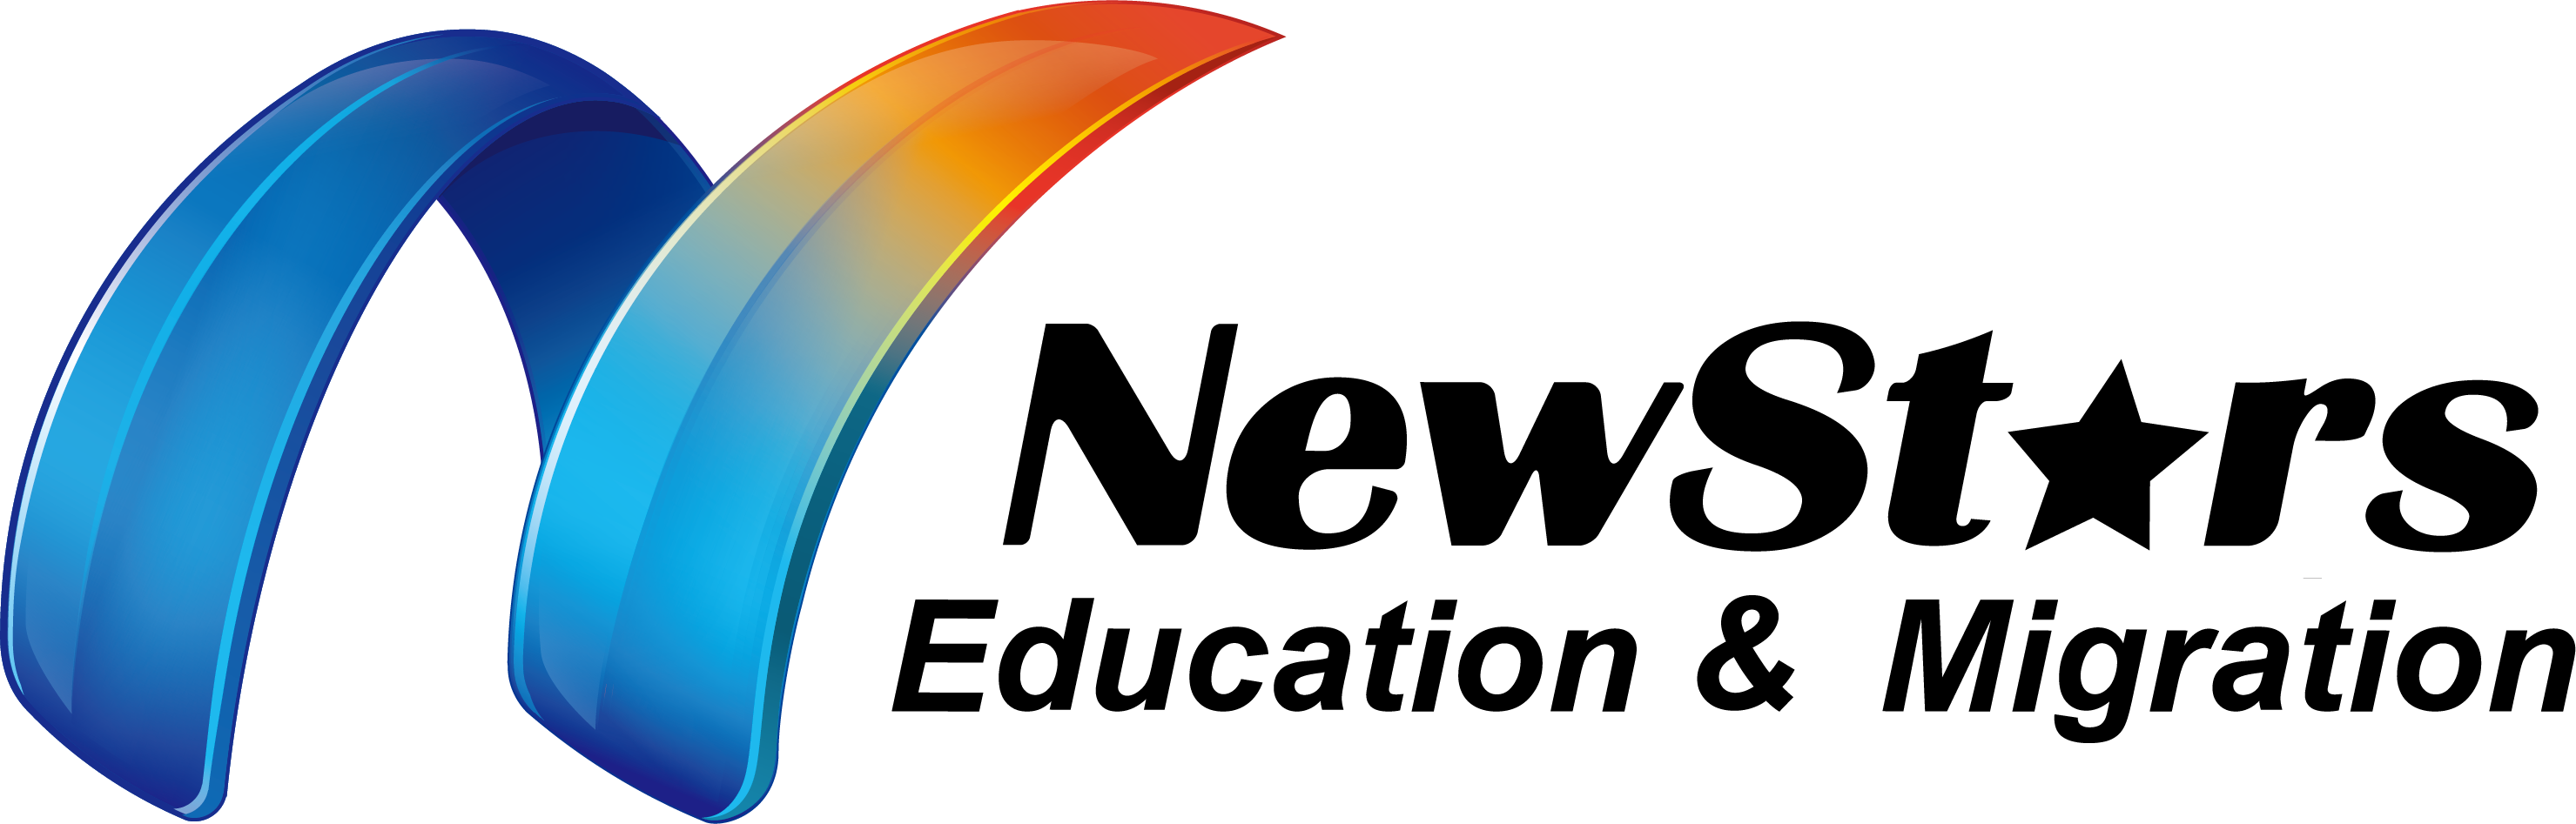 NewStars logo without background